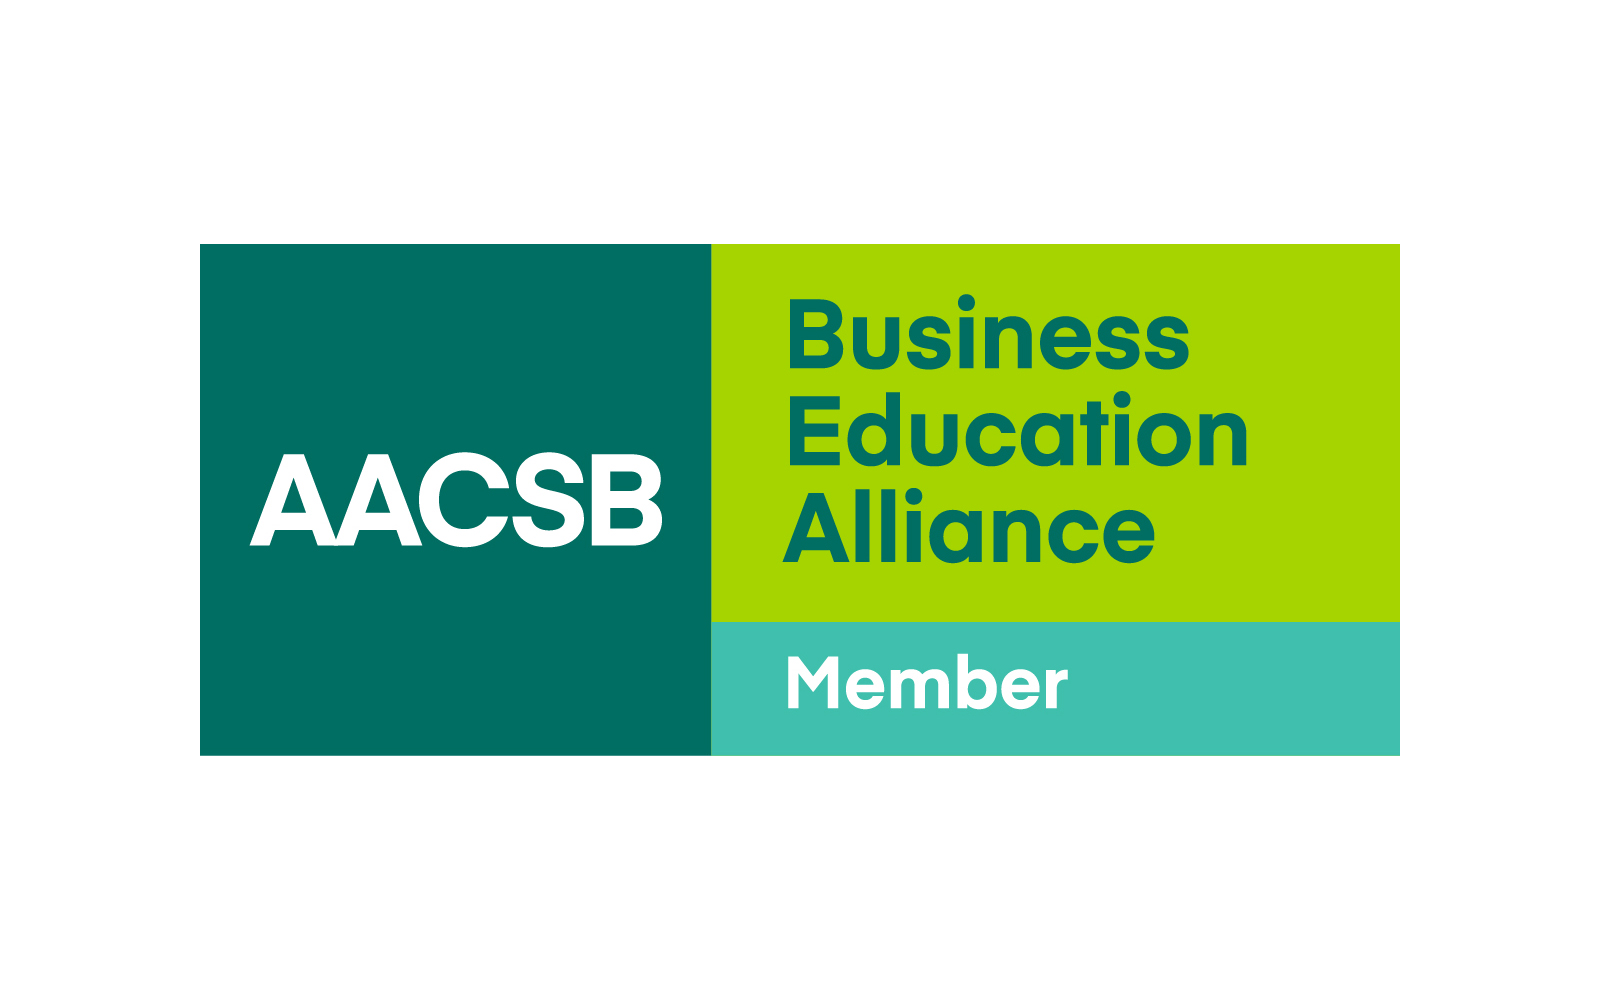 AACSB Education Alliance